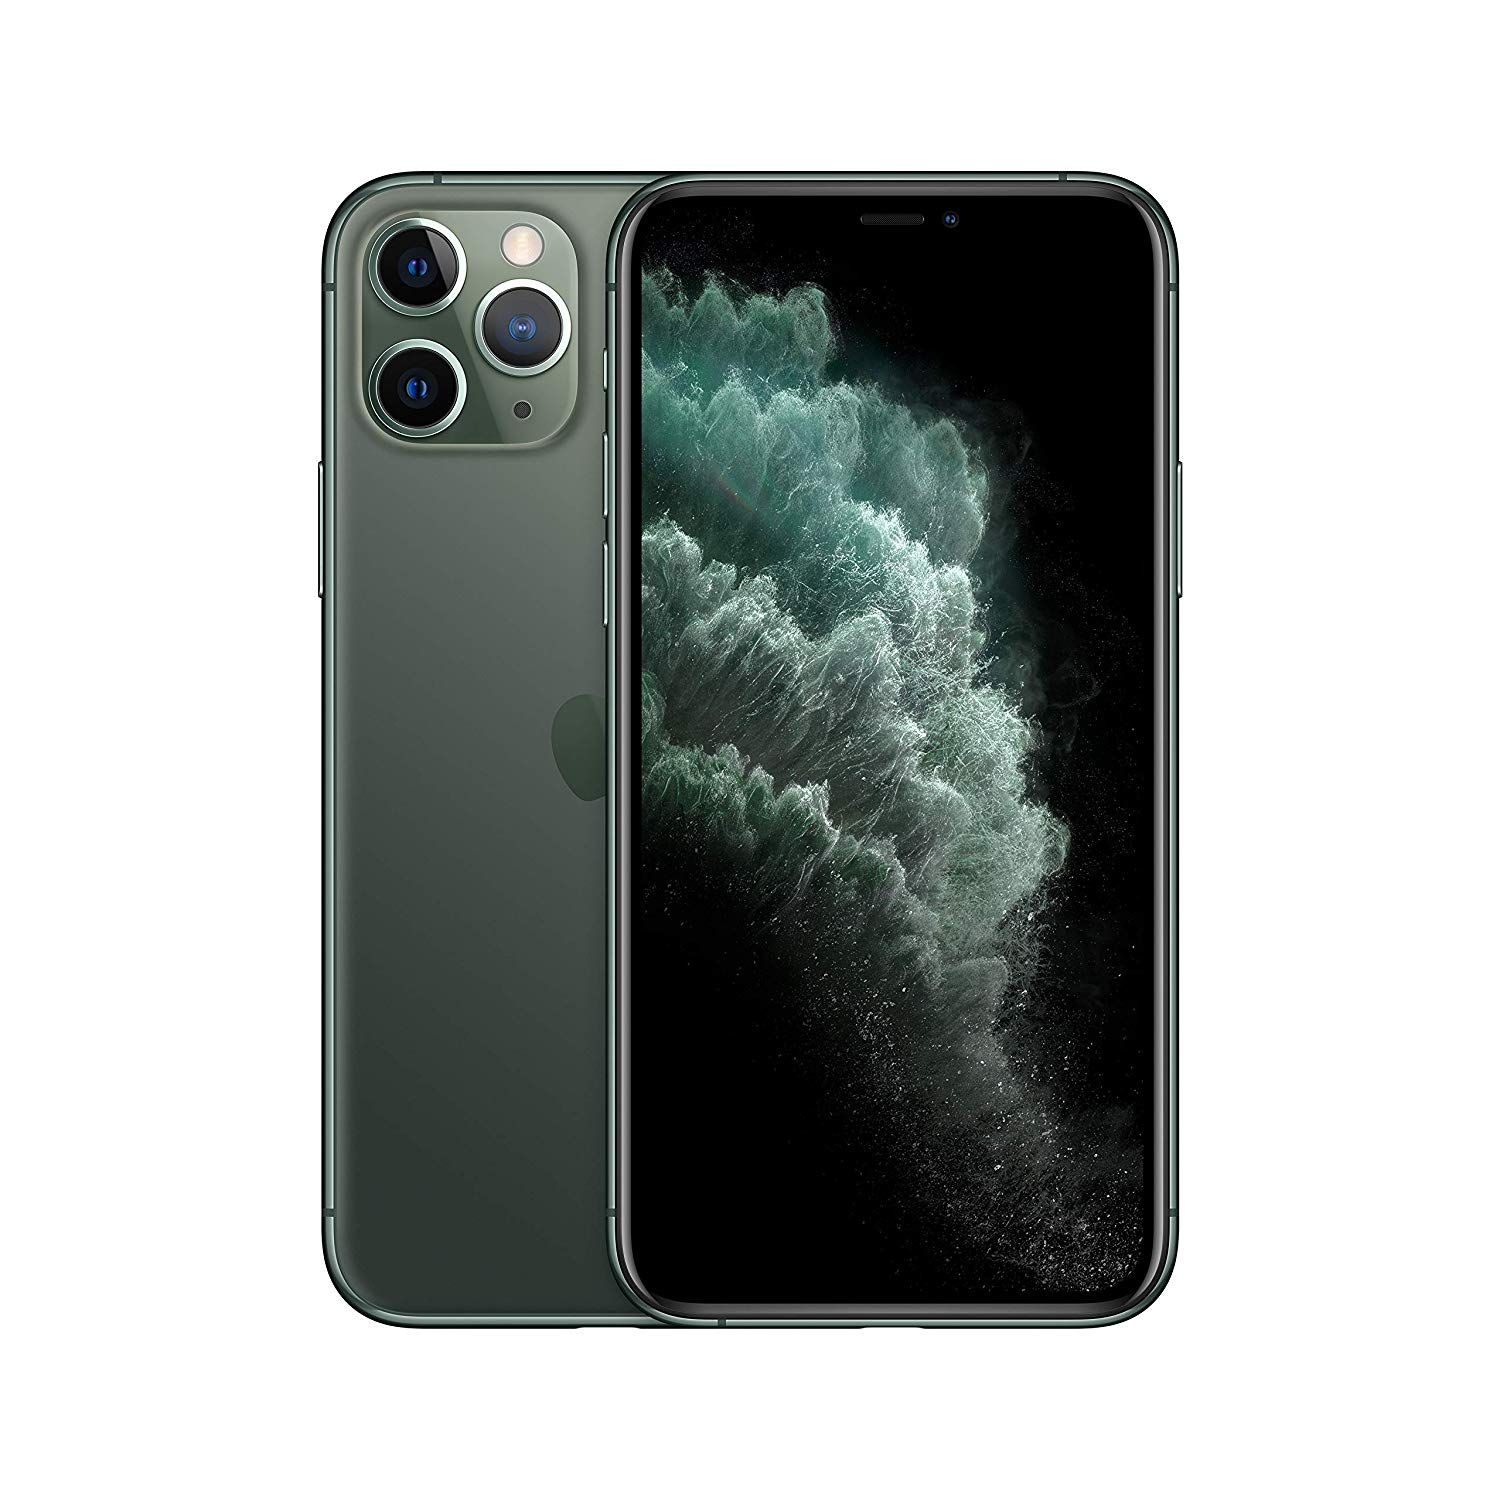 This Apple Iphone 11 Pro Max With 6 5 Inch Super Retina Xdr Oled Display Water And Dust Resistant 4 Meters For Up To 30 Minutes Ip Nel 2020 Apple Iphone Iphone Verde